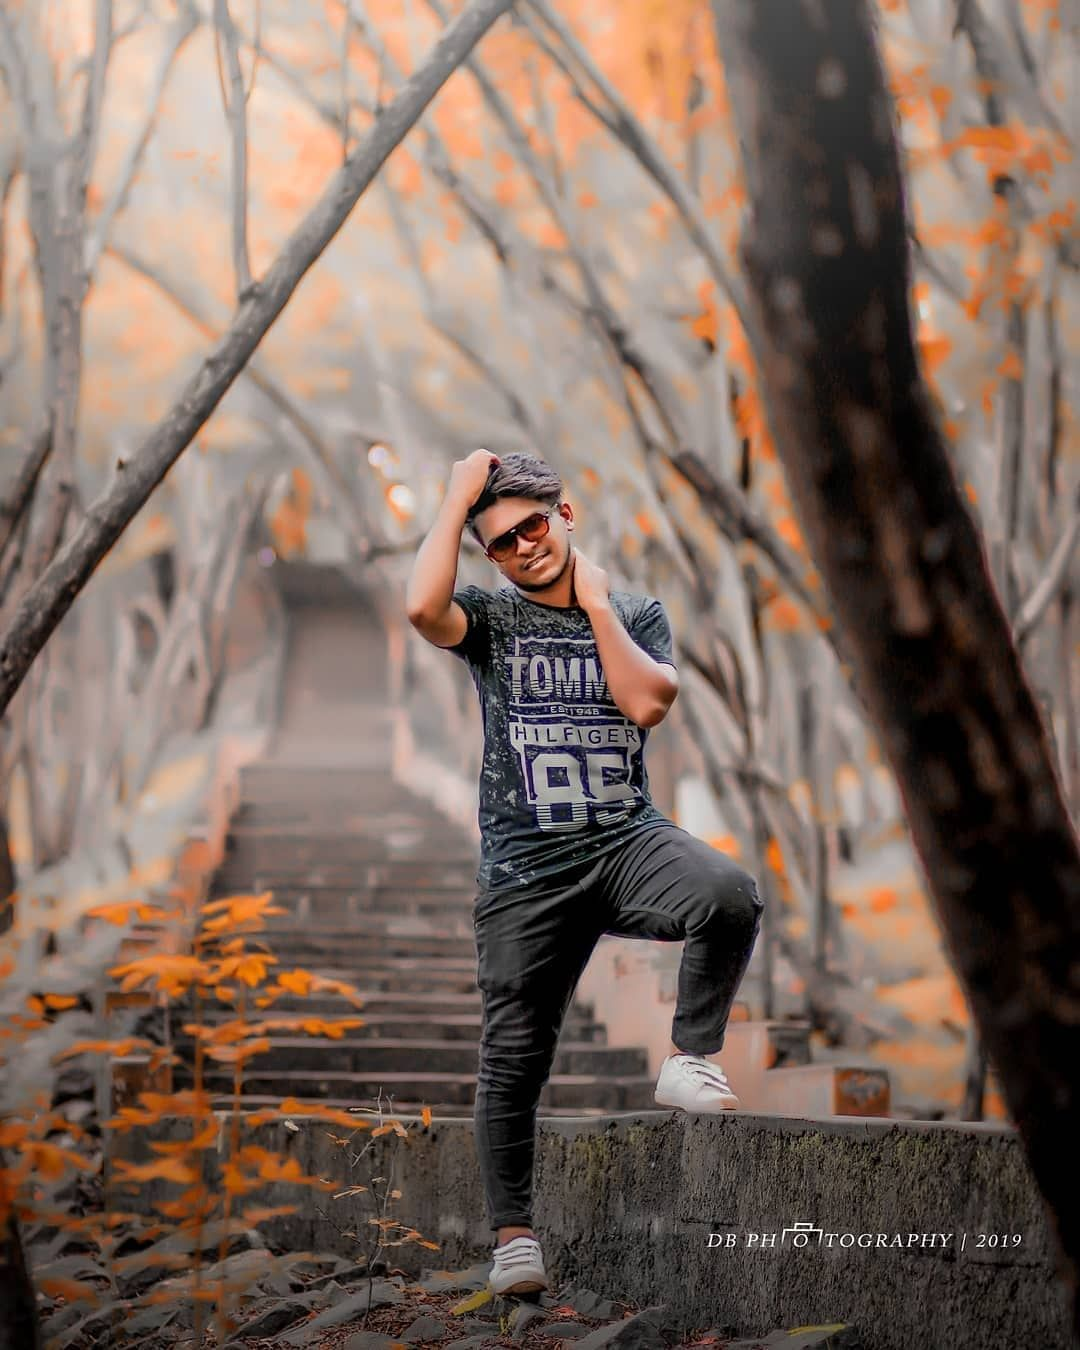 Best Cb Editing Background Download Full Hd Best Cb Photo Editing Lightroom Editing Background